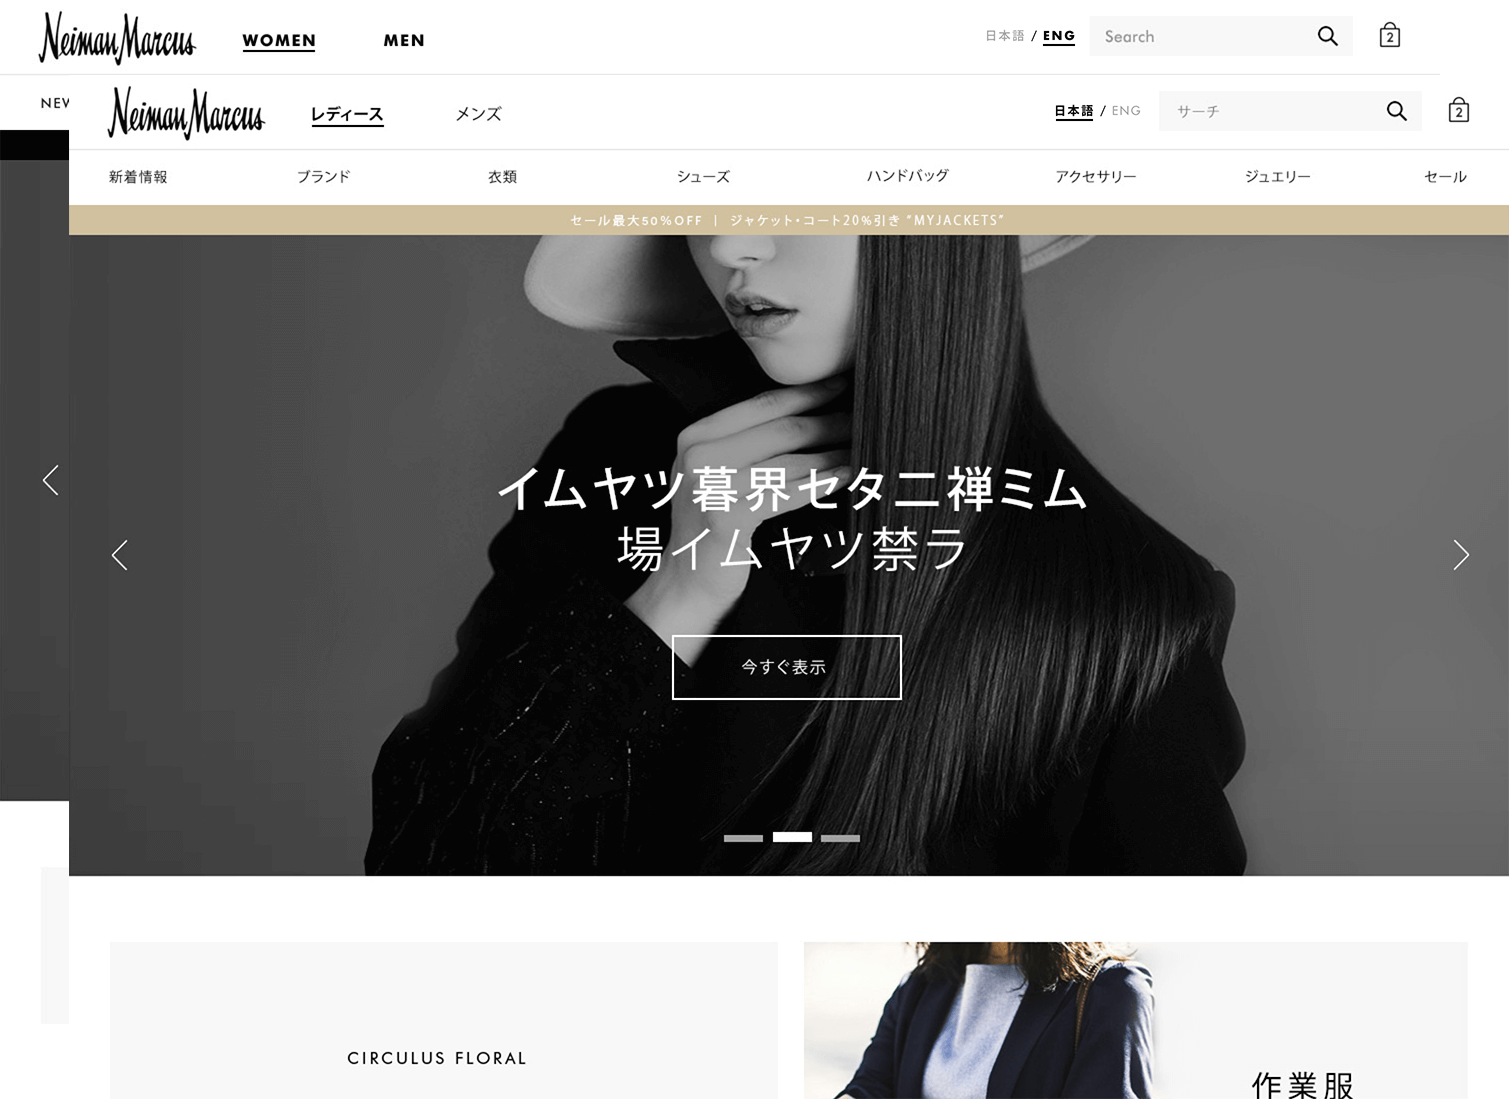 Homepage with Japanese text and female fashion model